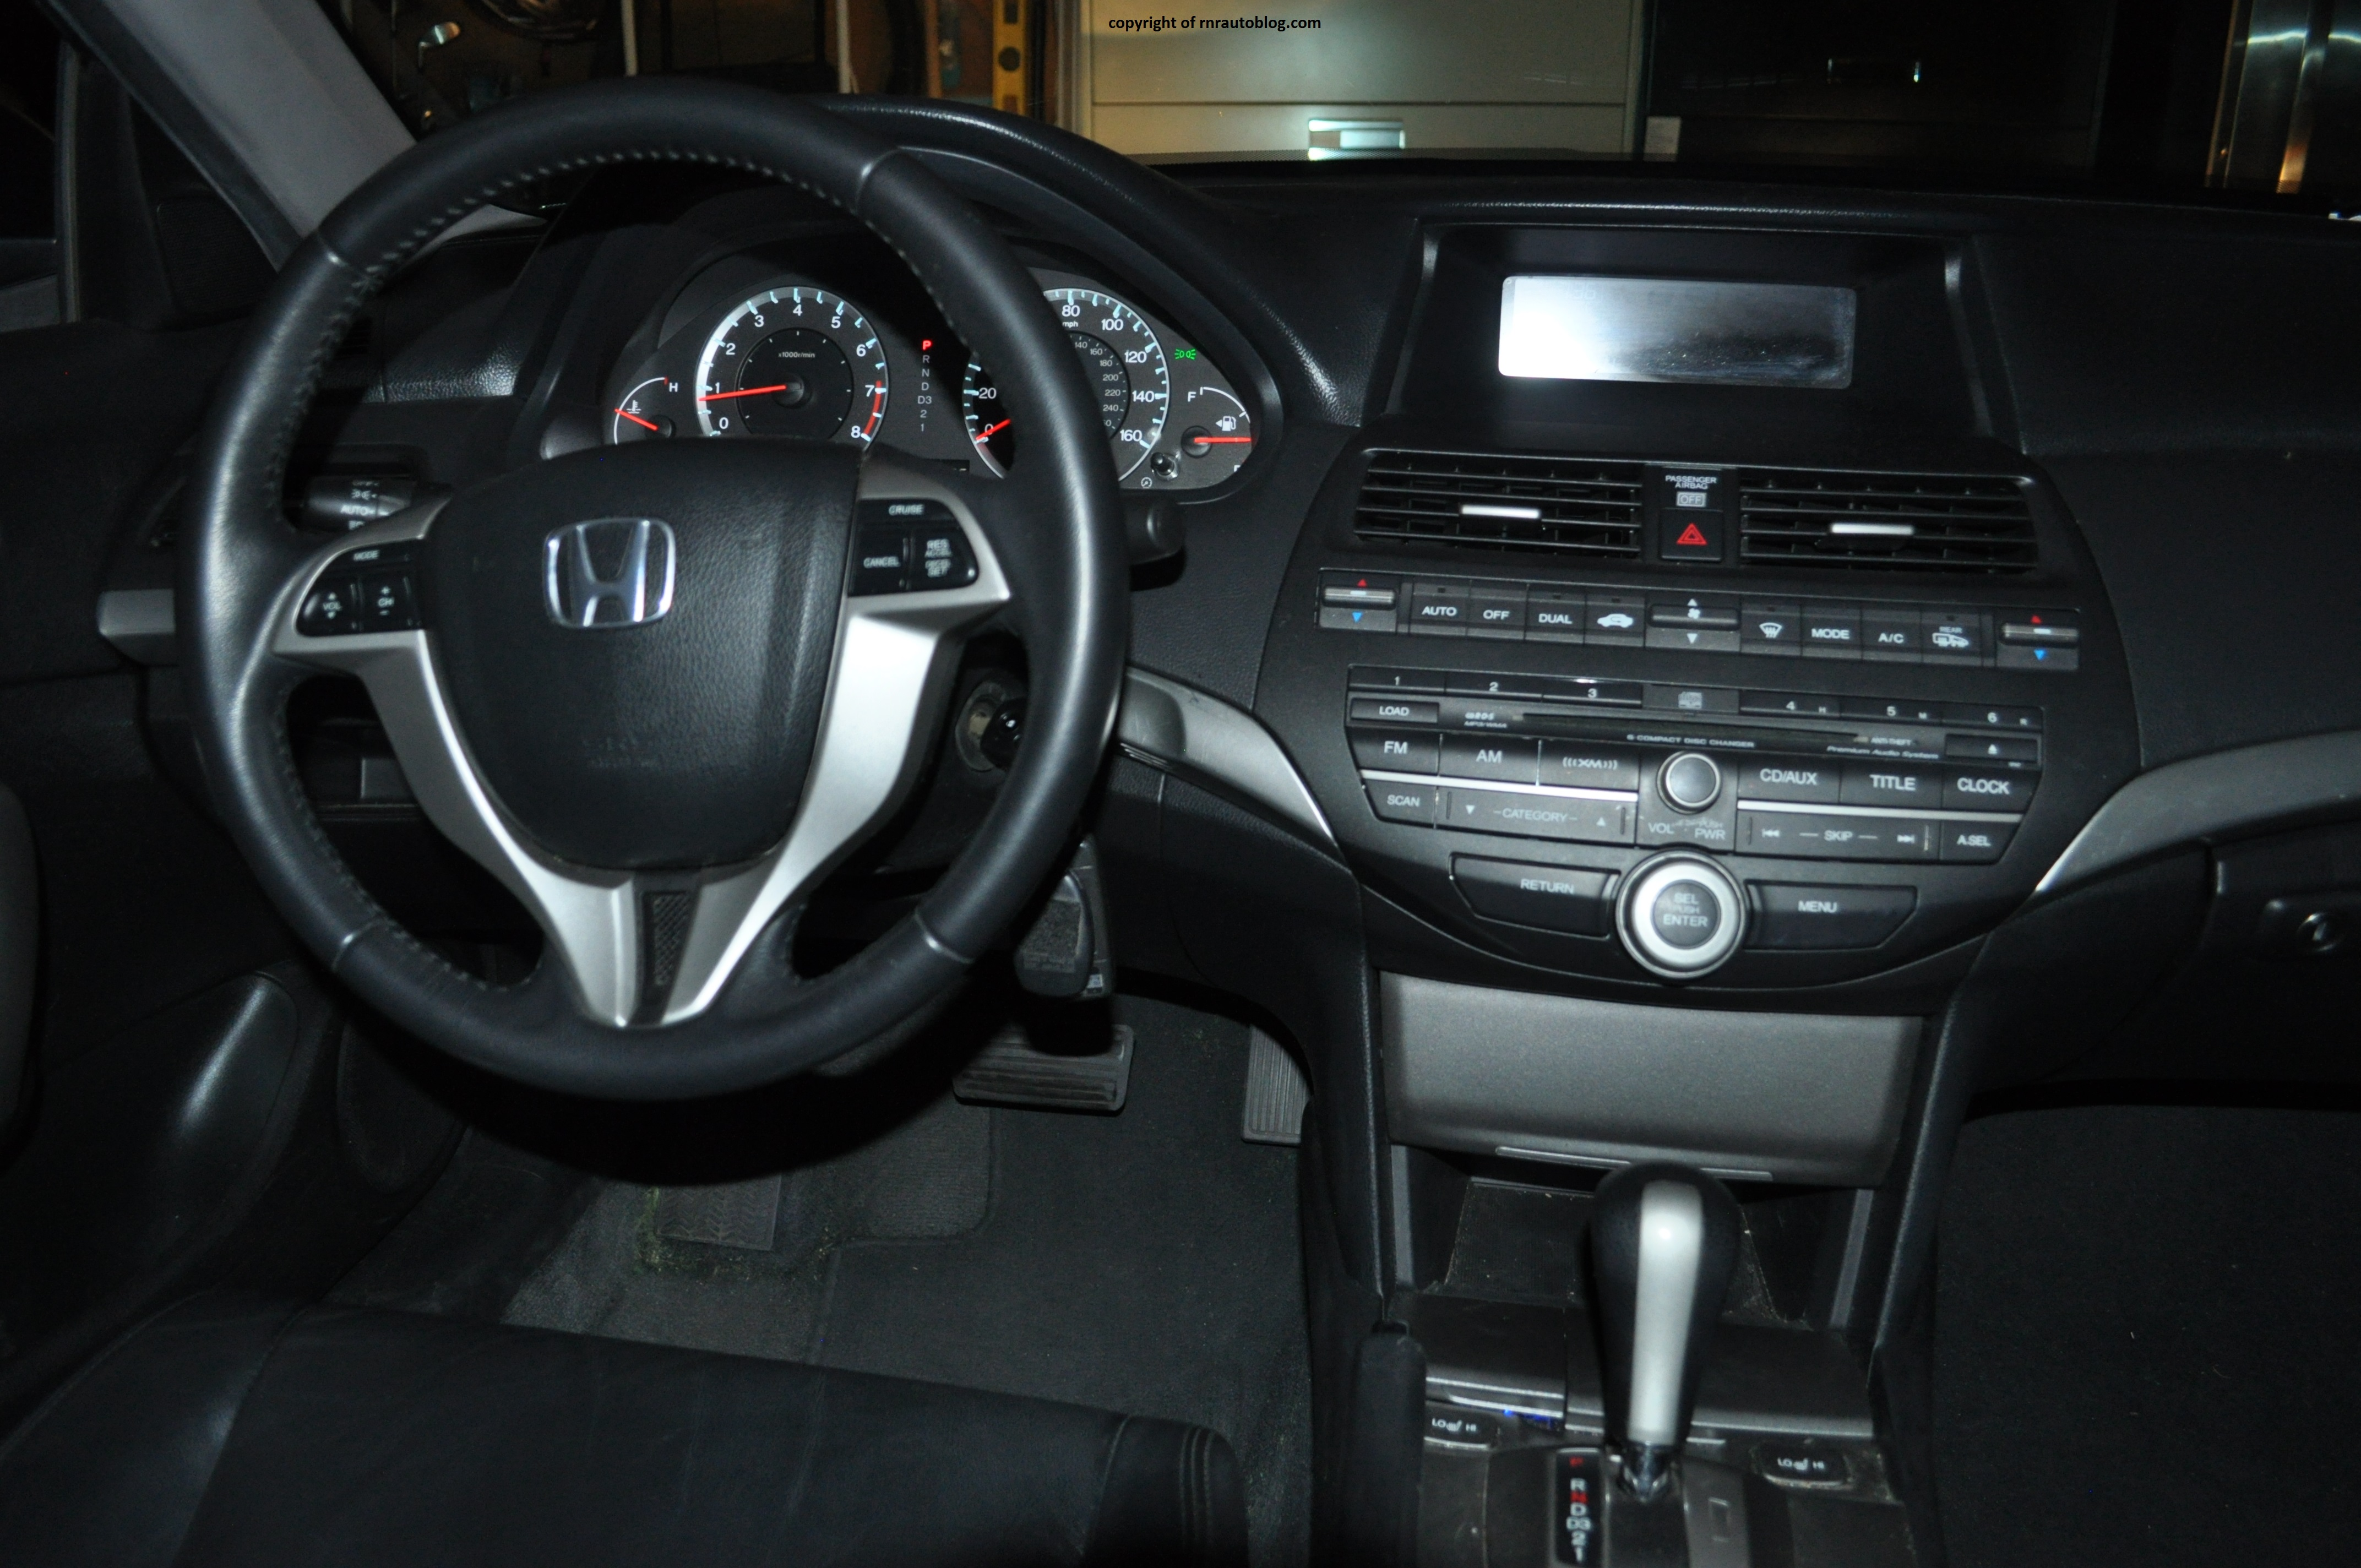 2008 Honda Accord Exl V6 Coupe Rnr Automotive Blog